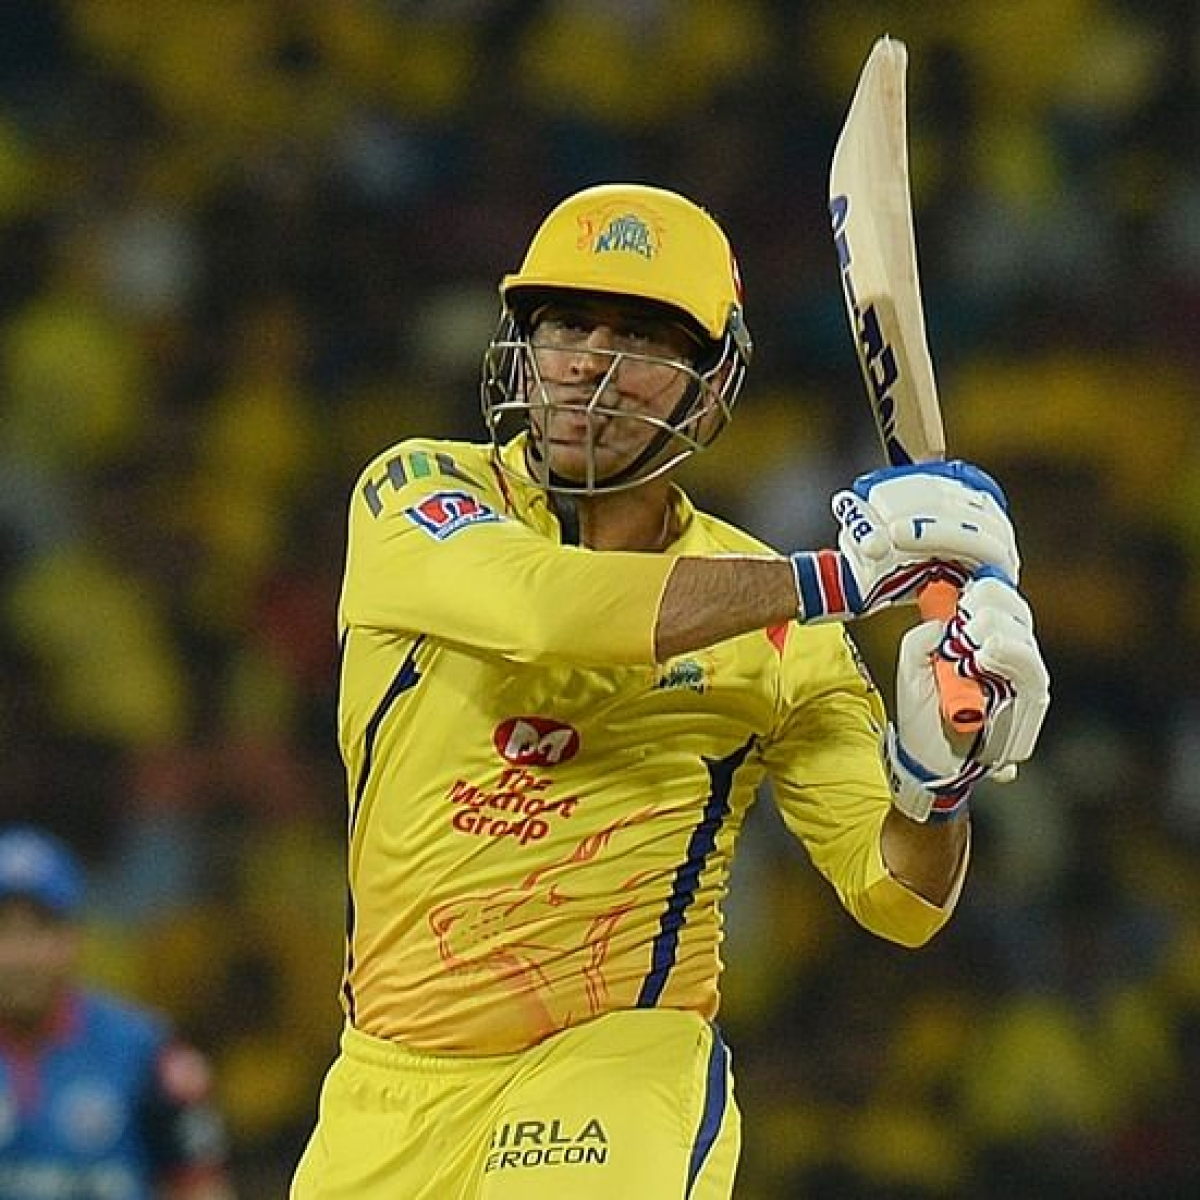 A 'viral' end to IPL will be Dhoni's swansong